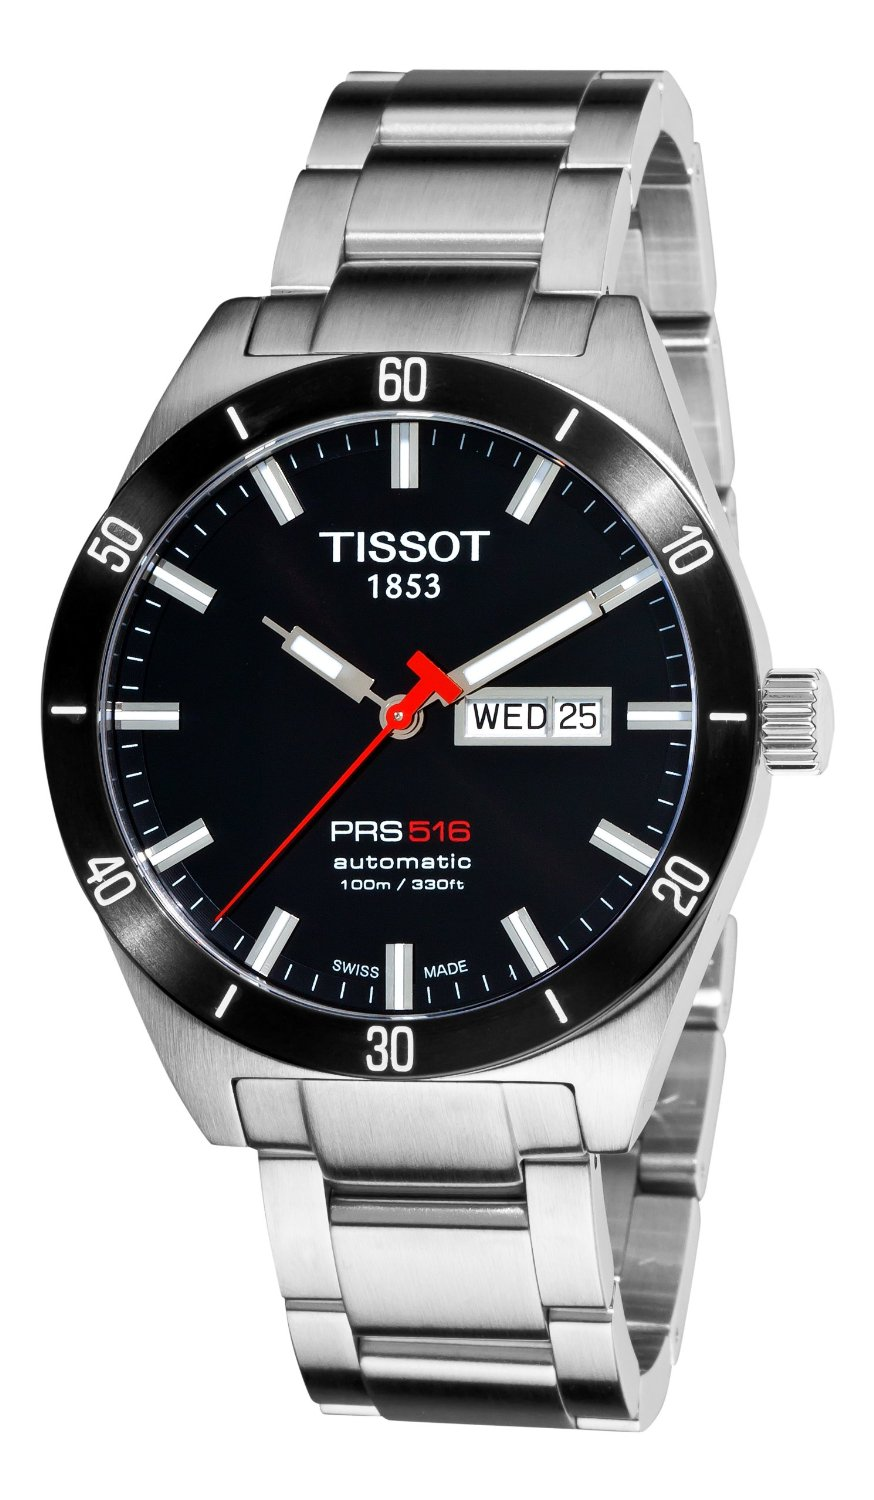 Tissot Gents Watch PRS516 T0444302105100